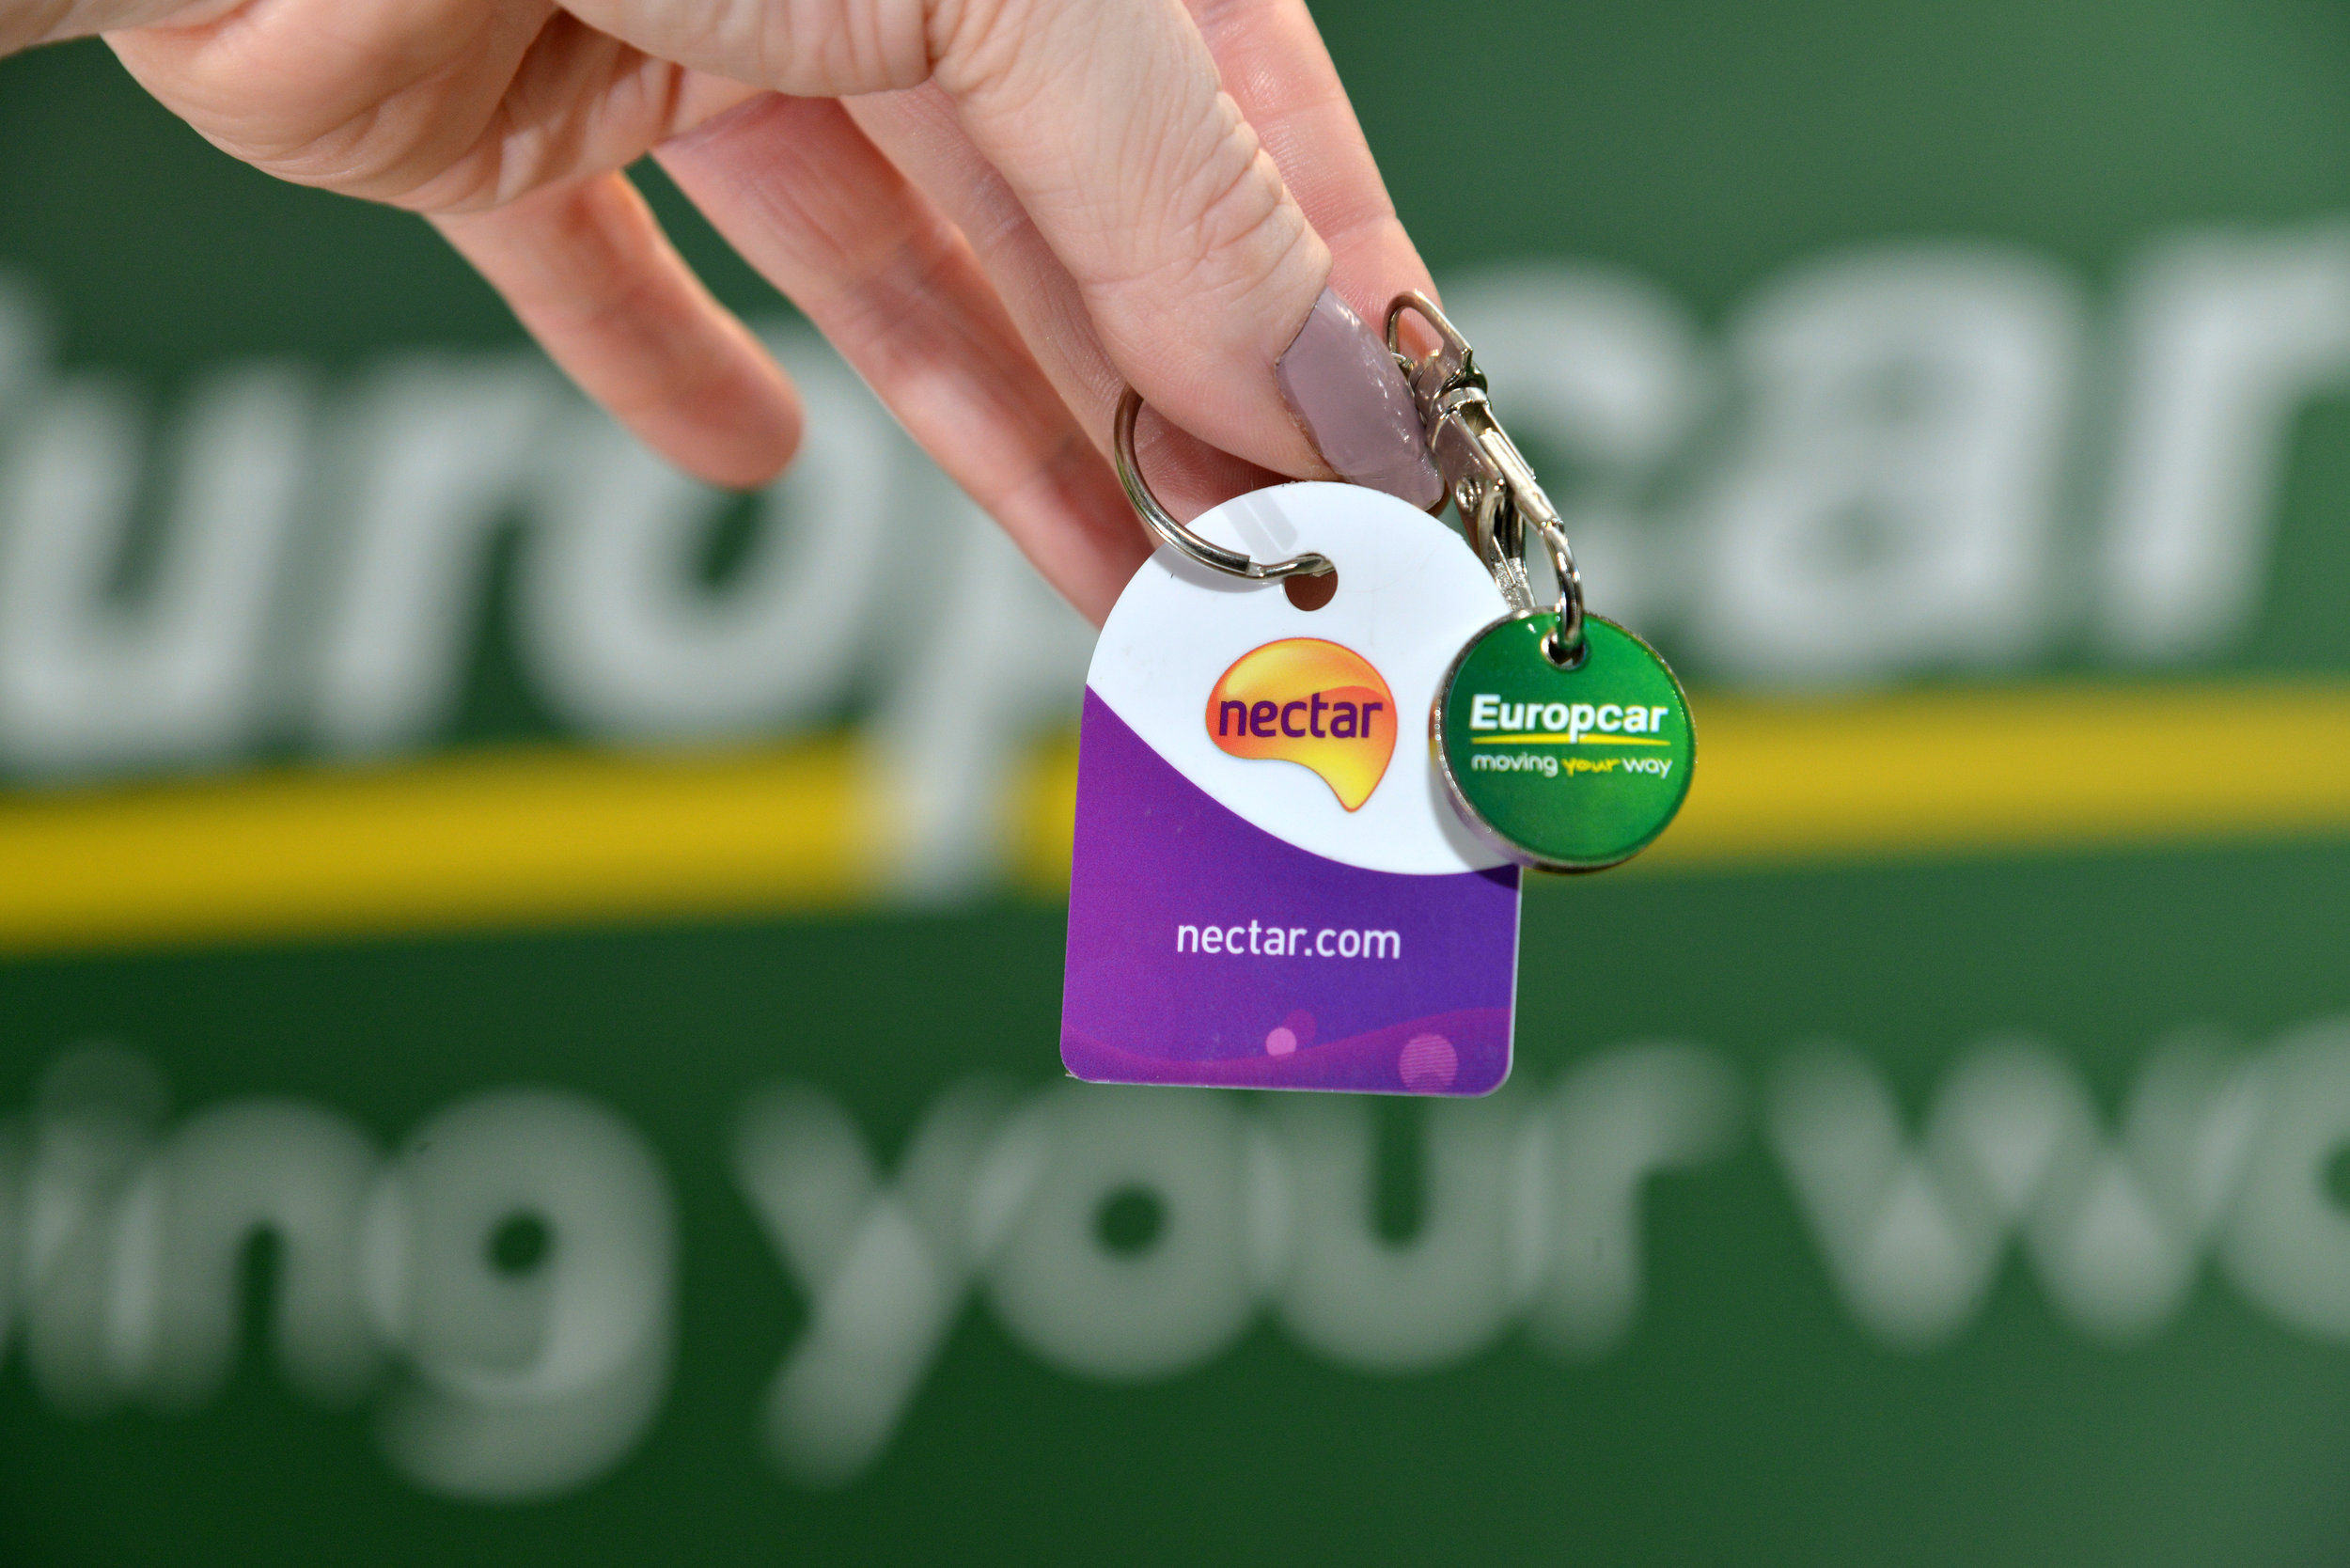 Drive up Nectar points with Europcar bookings